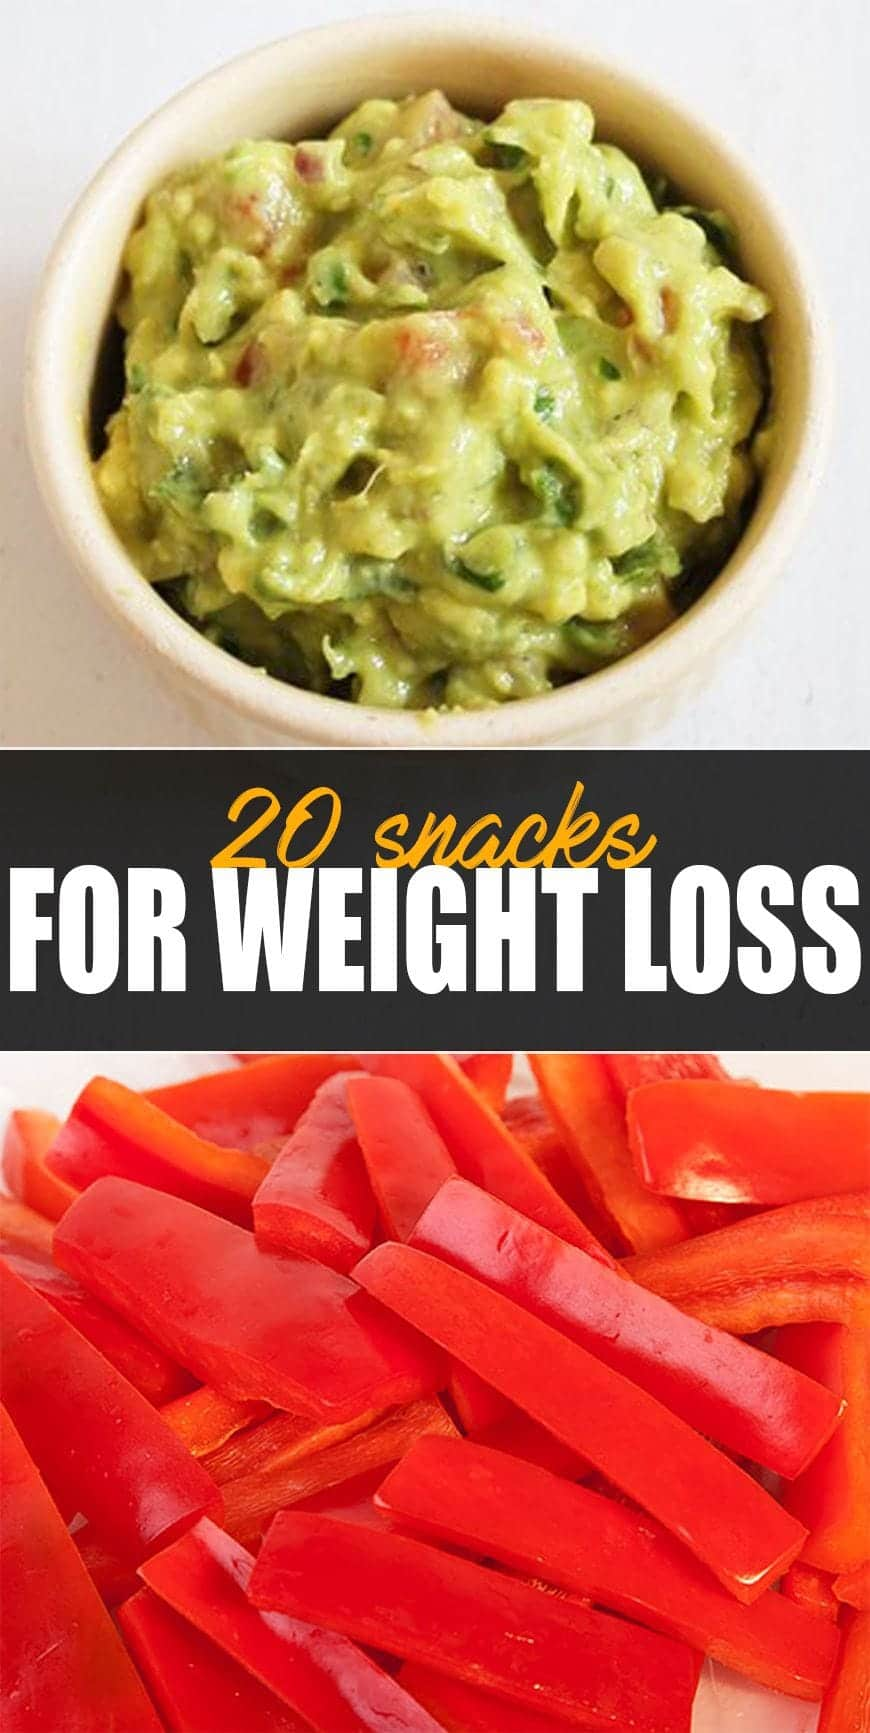 20 Easy Healthy Snack Ideas - Guacamole with paprika sticks